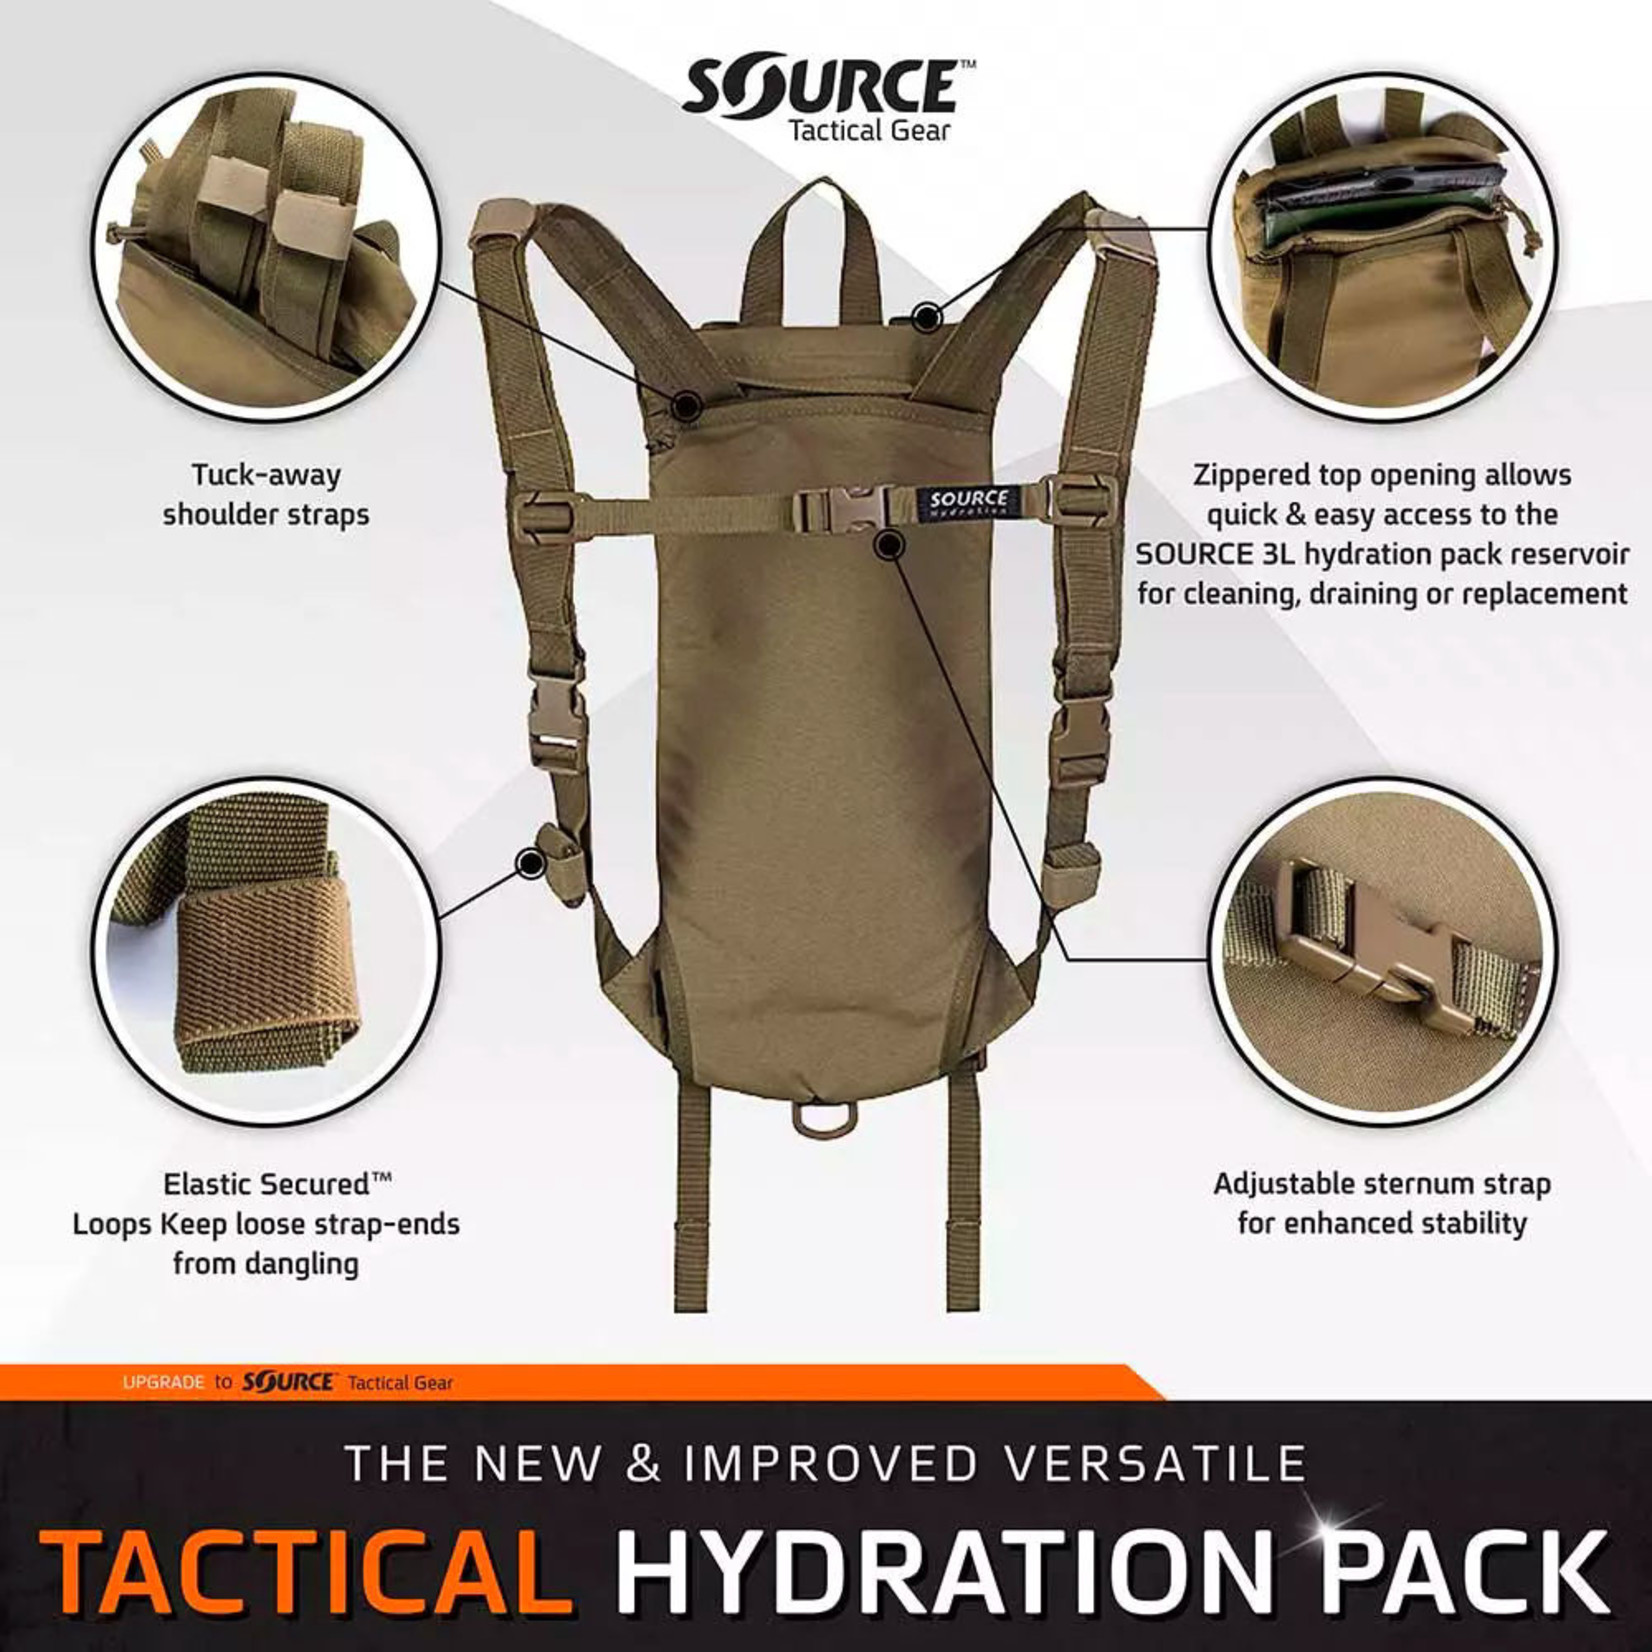 SOURCE TACTICAL GEAR TACTICAL HYDRATION PACK 3L  (100 oz.)